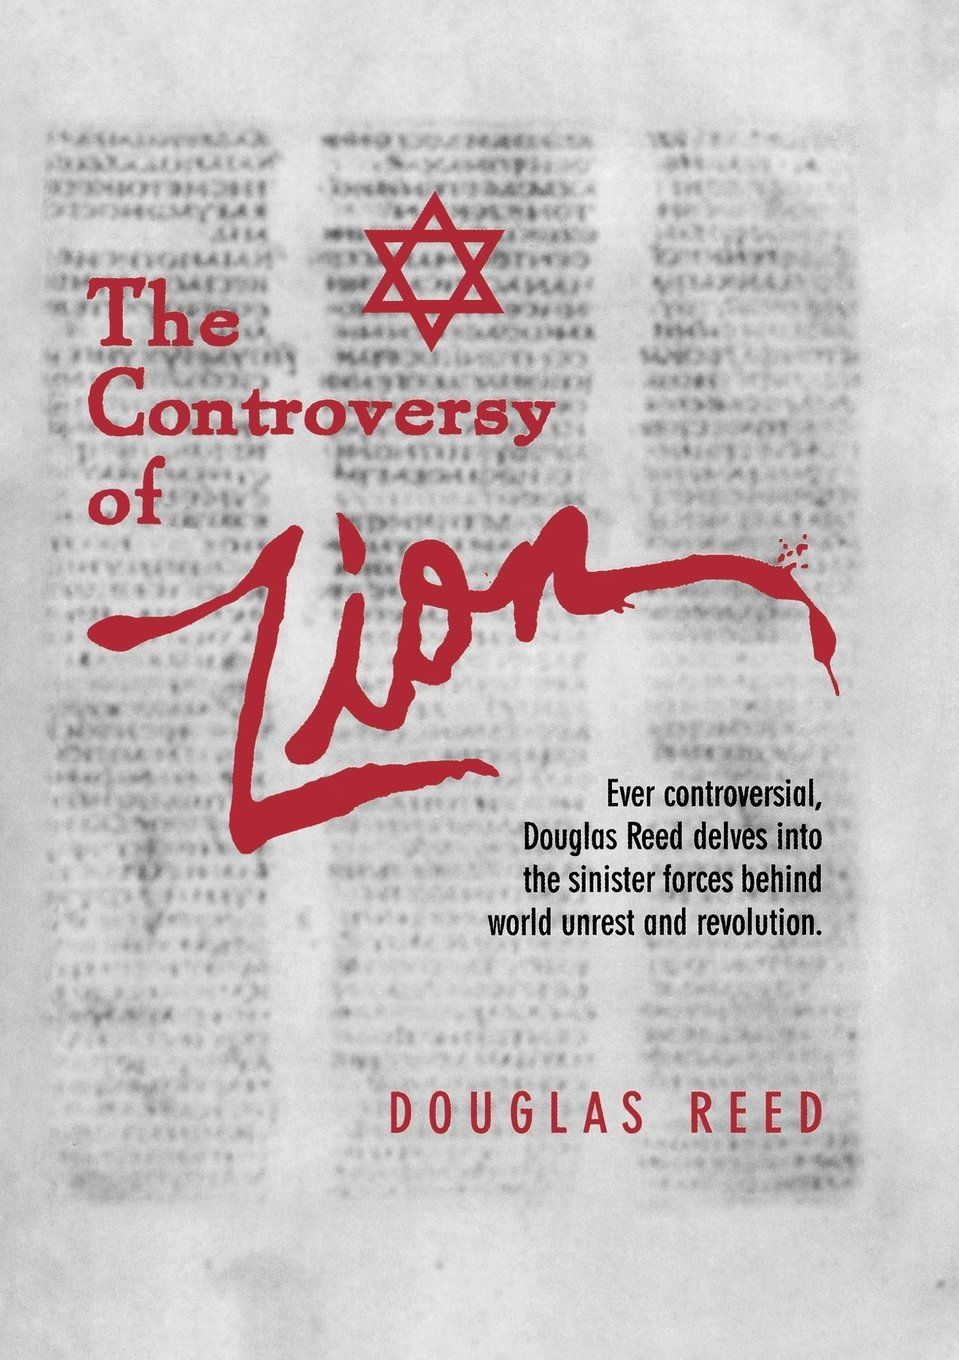 The Controversy of Zion - Douglas Reed